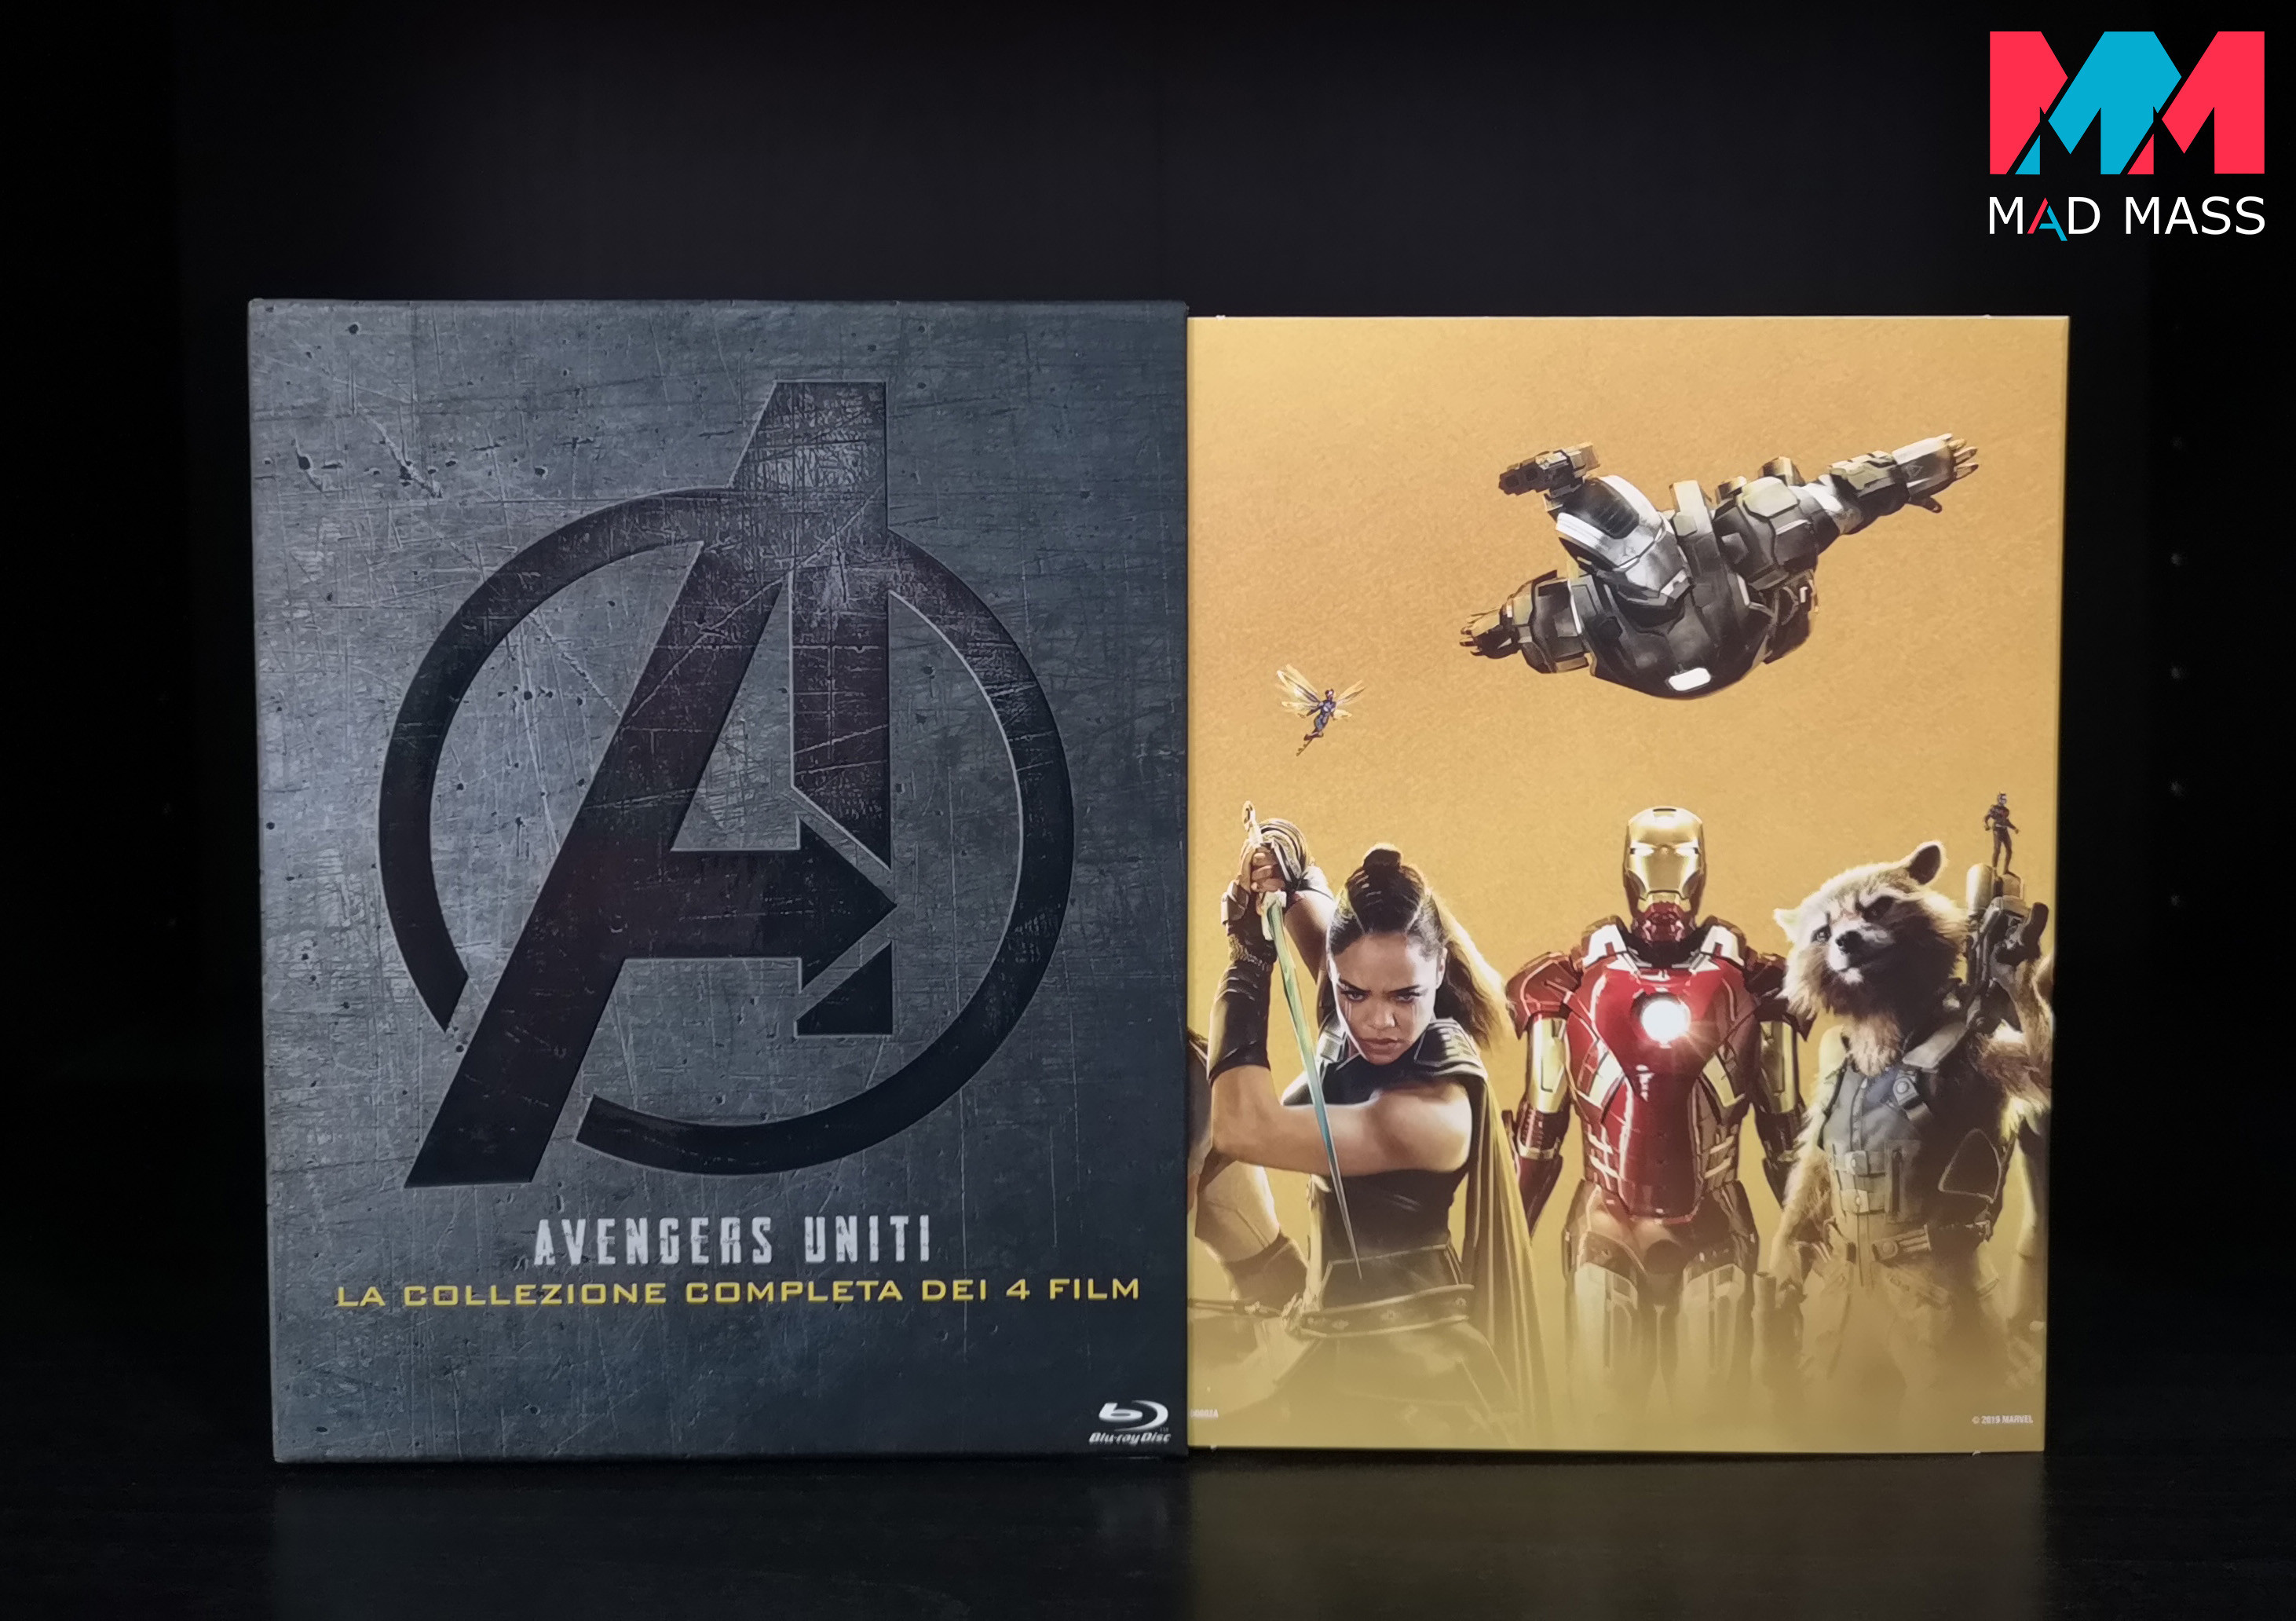 Black Friday Amazon 2019: Avengers Uniti la collezione completa in Blu-ray